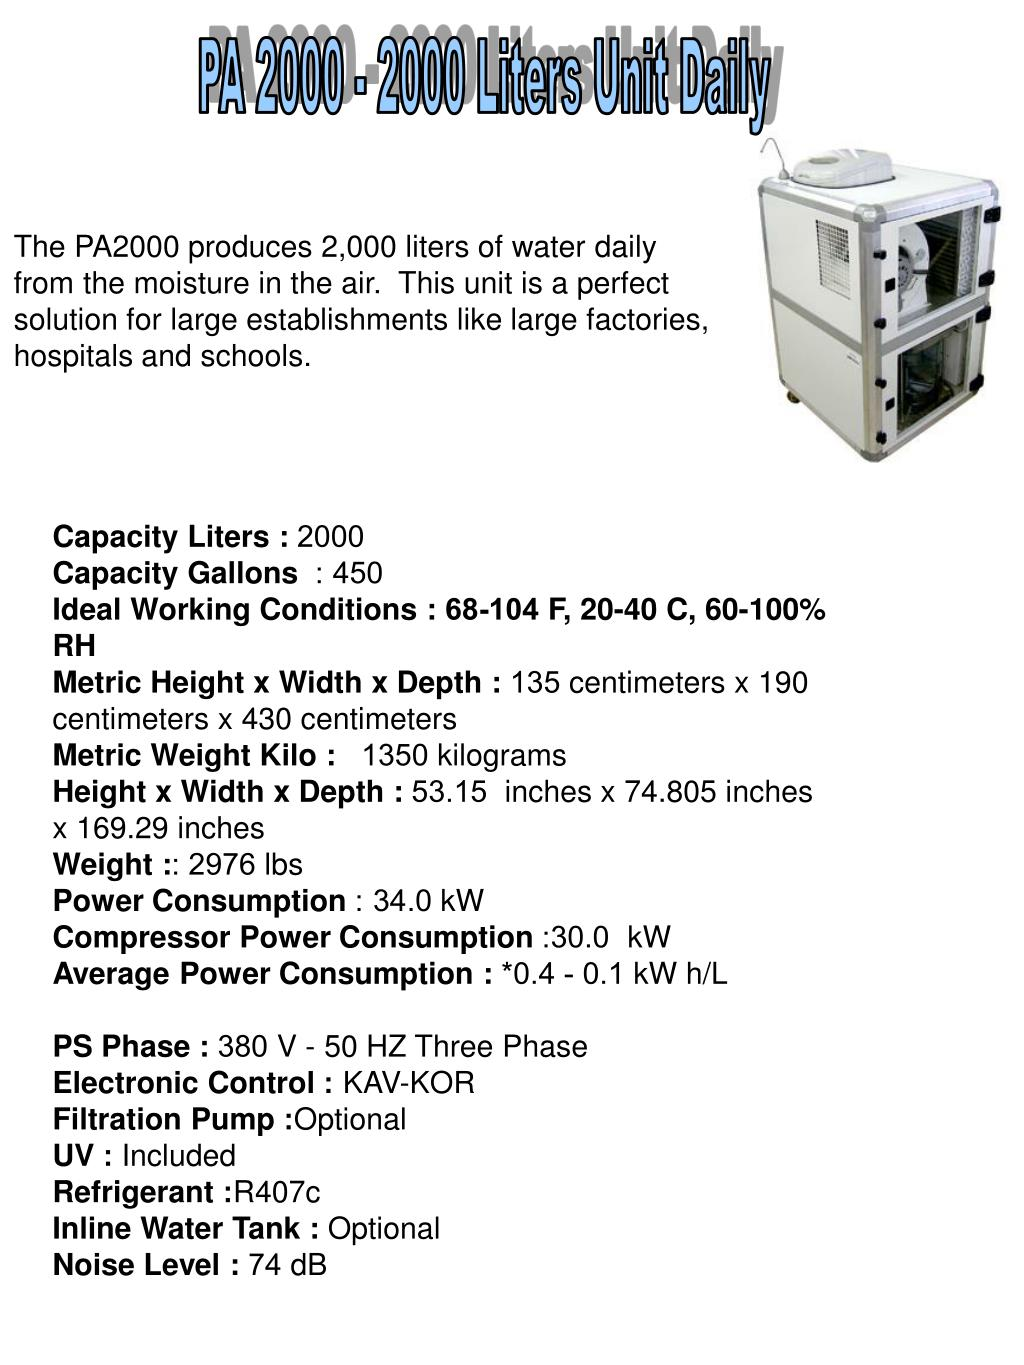 PA 2000 - 2000 Liters Unit Daily